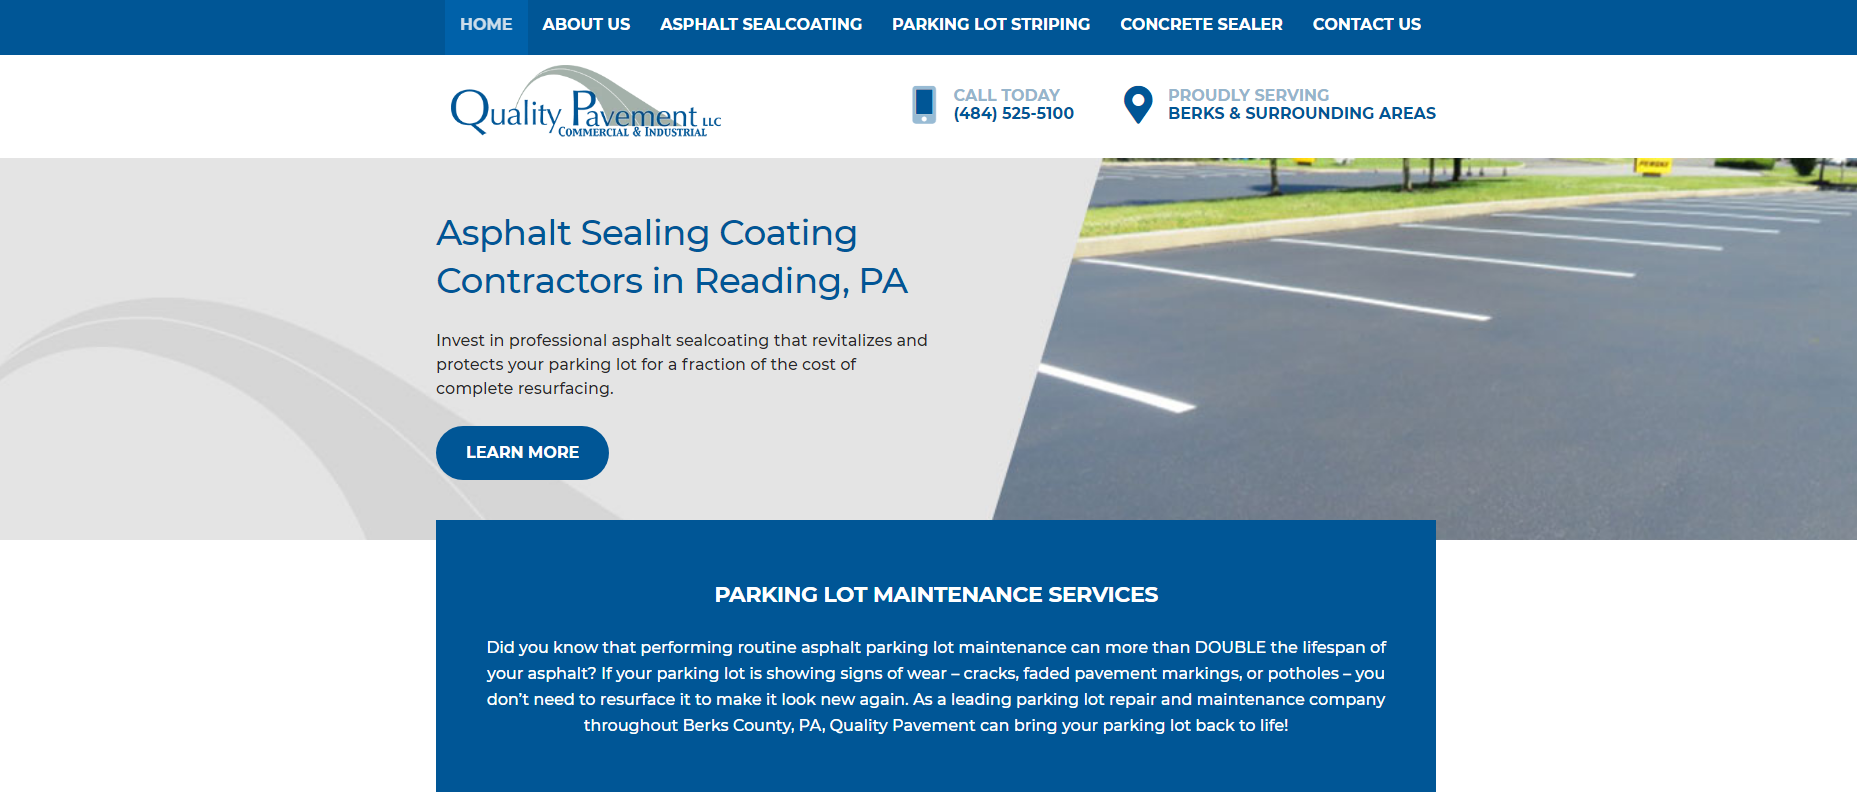 Screen capture of Quality Pavement's website homepage